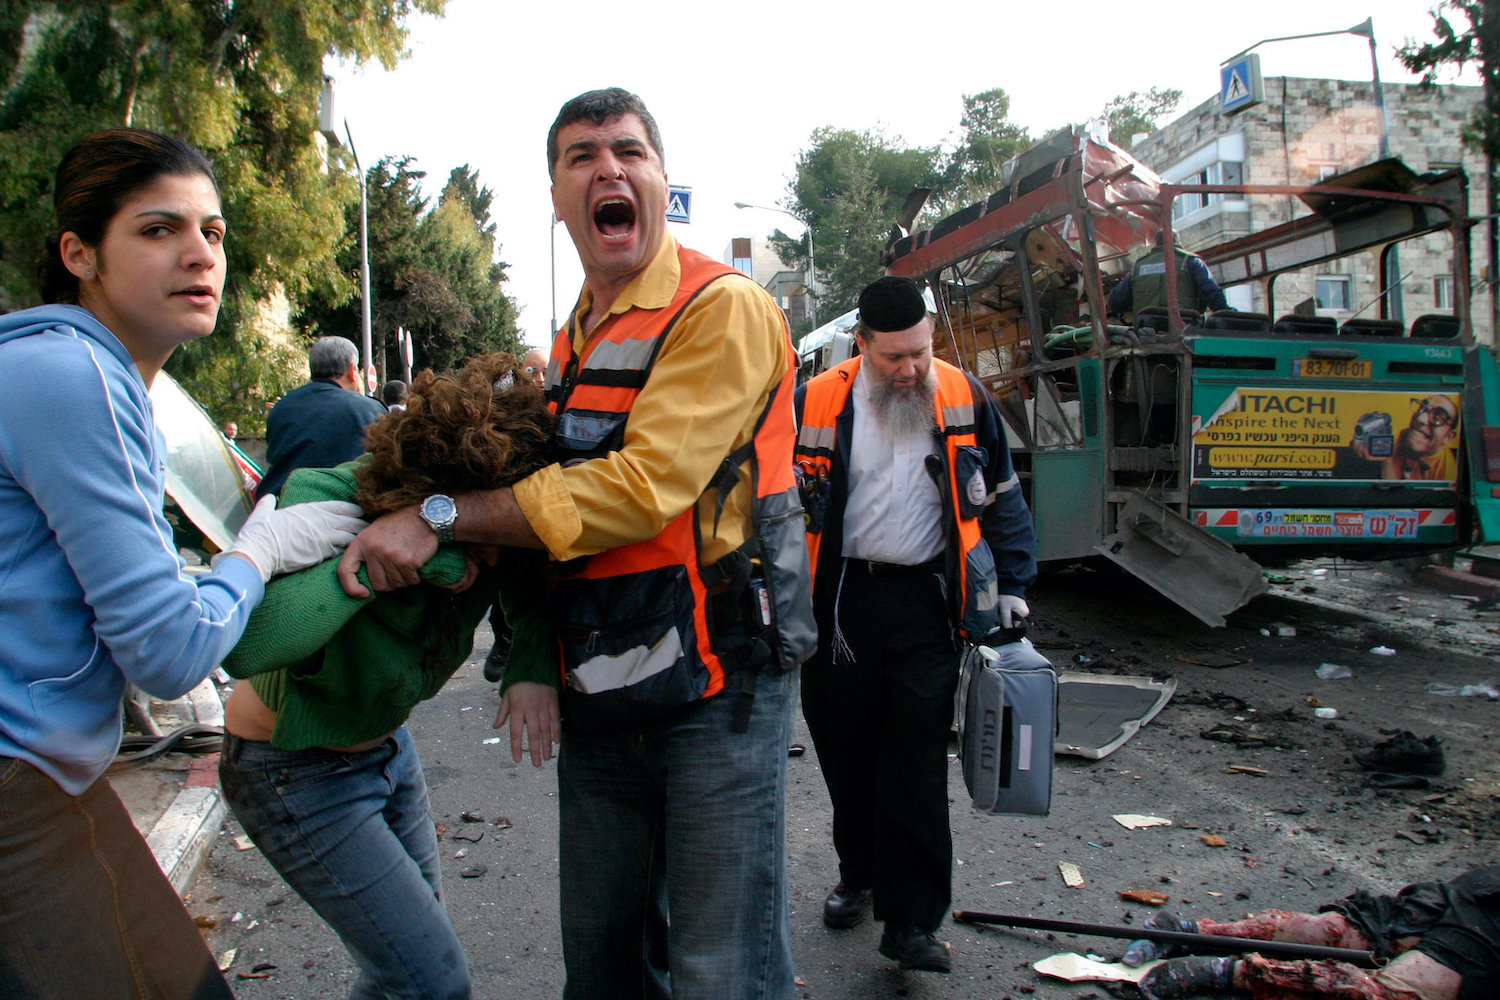 Wounded Israelis receive first aid next to the wreckage of a destroyed bus after a Palestinian suicide bomber blew himself up near Israeli Prime Minister Ariel Sharon's official residence in Jerusalem, January 29, 2004. (Haim Zach/Flash90)